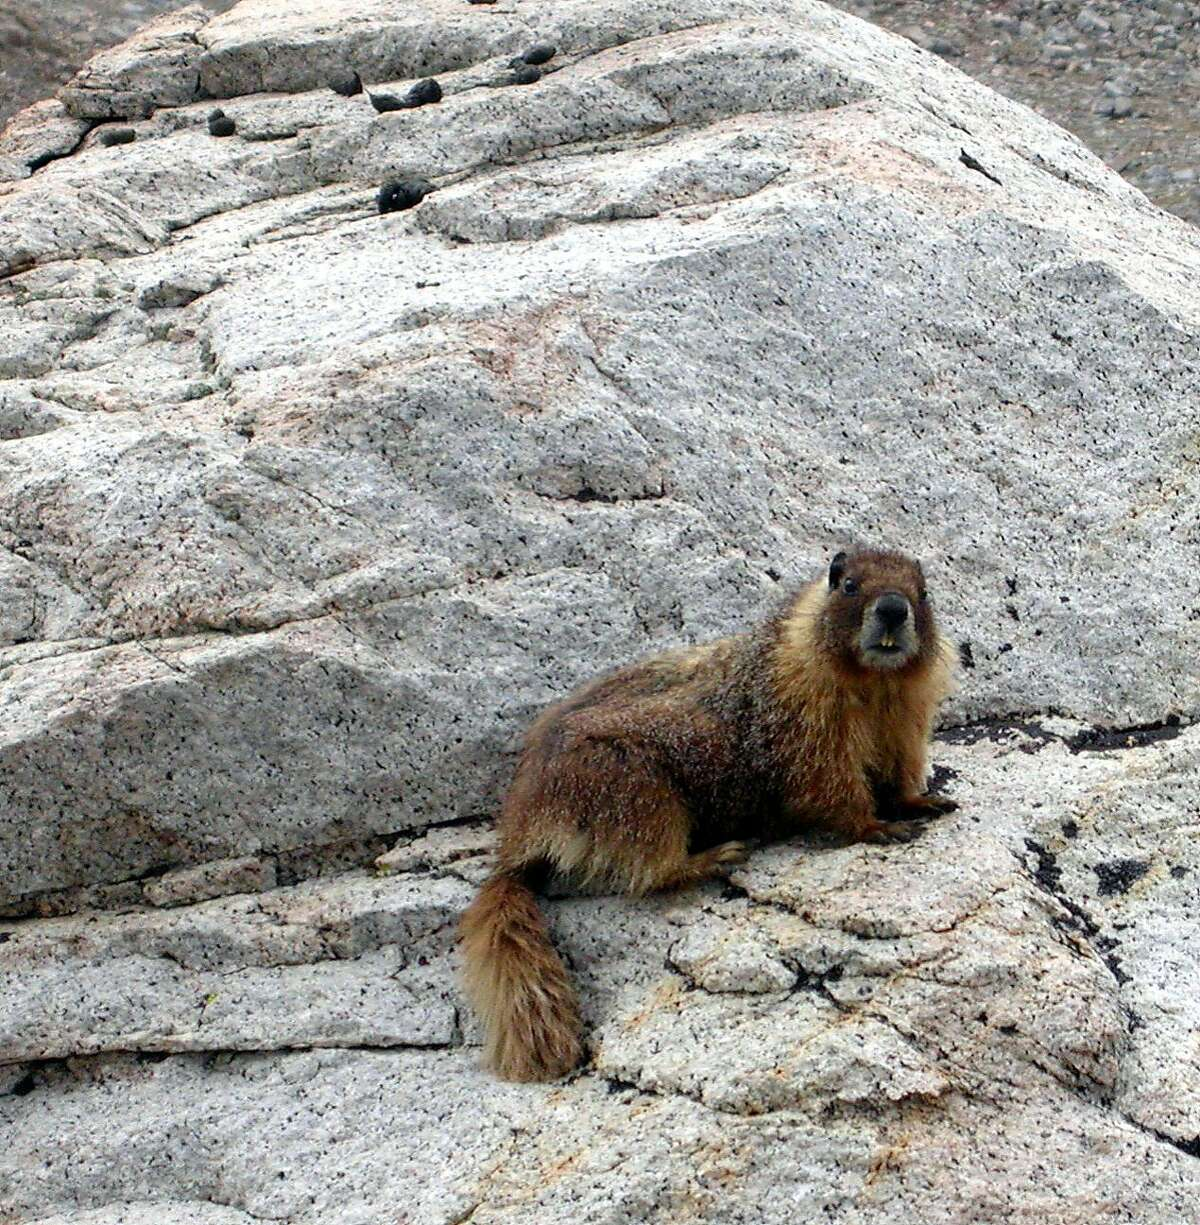 Marmot, which live in the high Sierra above tree line, have already submerged into hibernation near the Sierra crest in Yosemite National Park